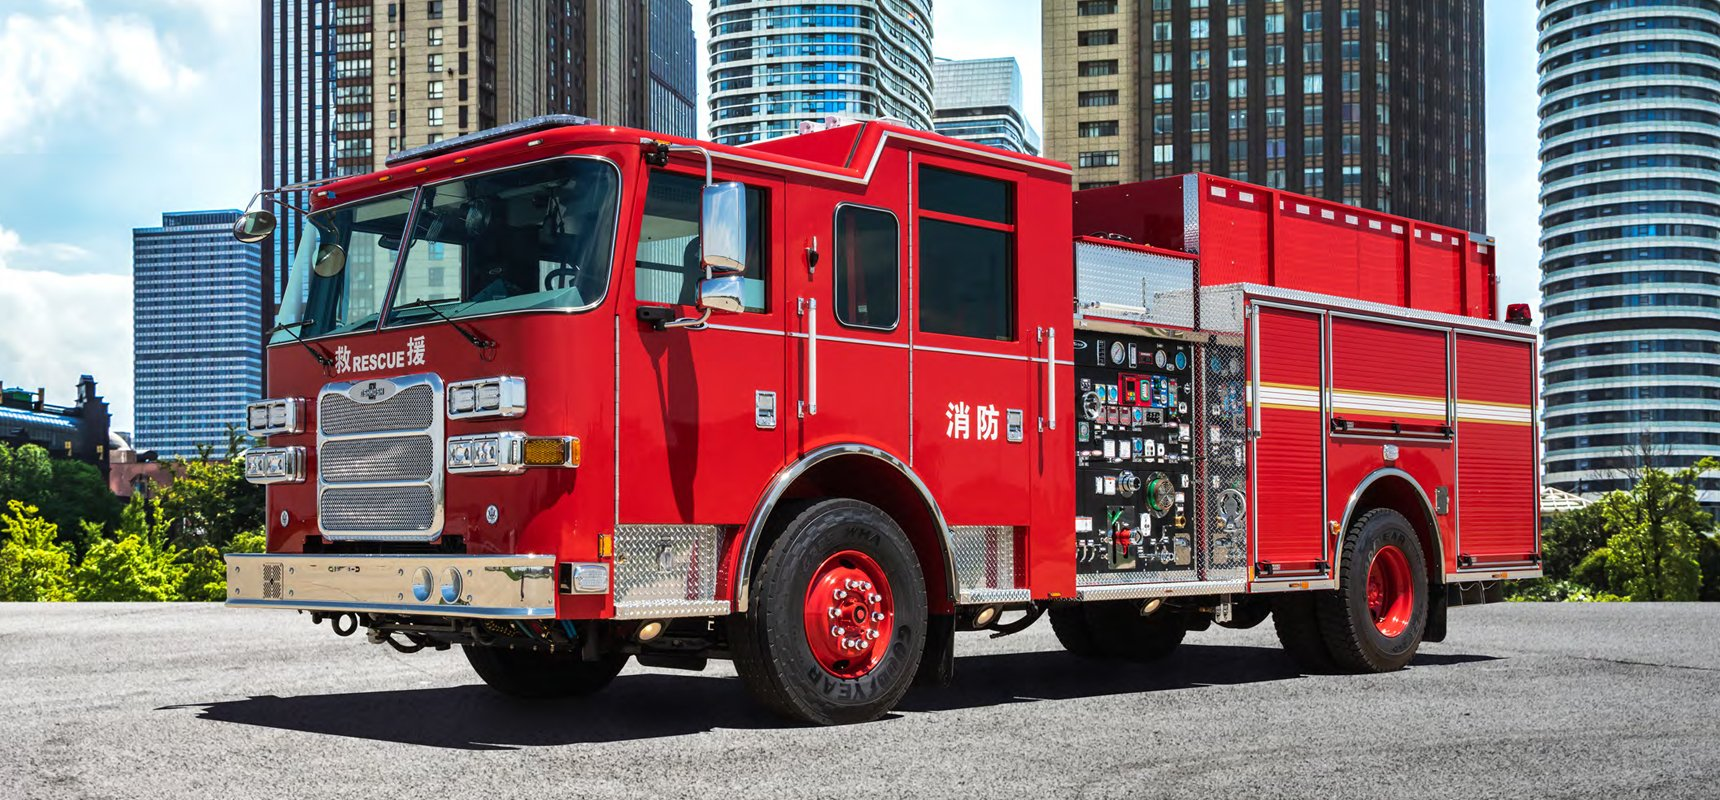 Pierce Manufacturing introduced the new Ultra Highrise Pumper at China Fire 2019 in Beijing on October 16, 2019